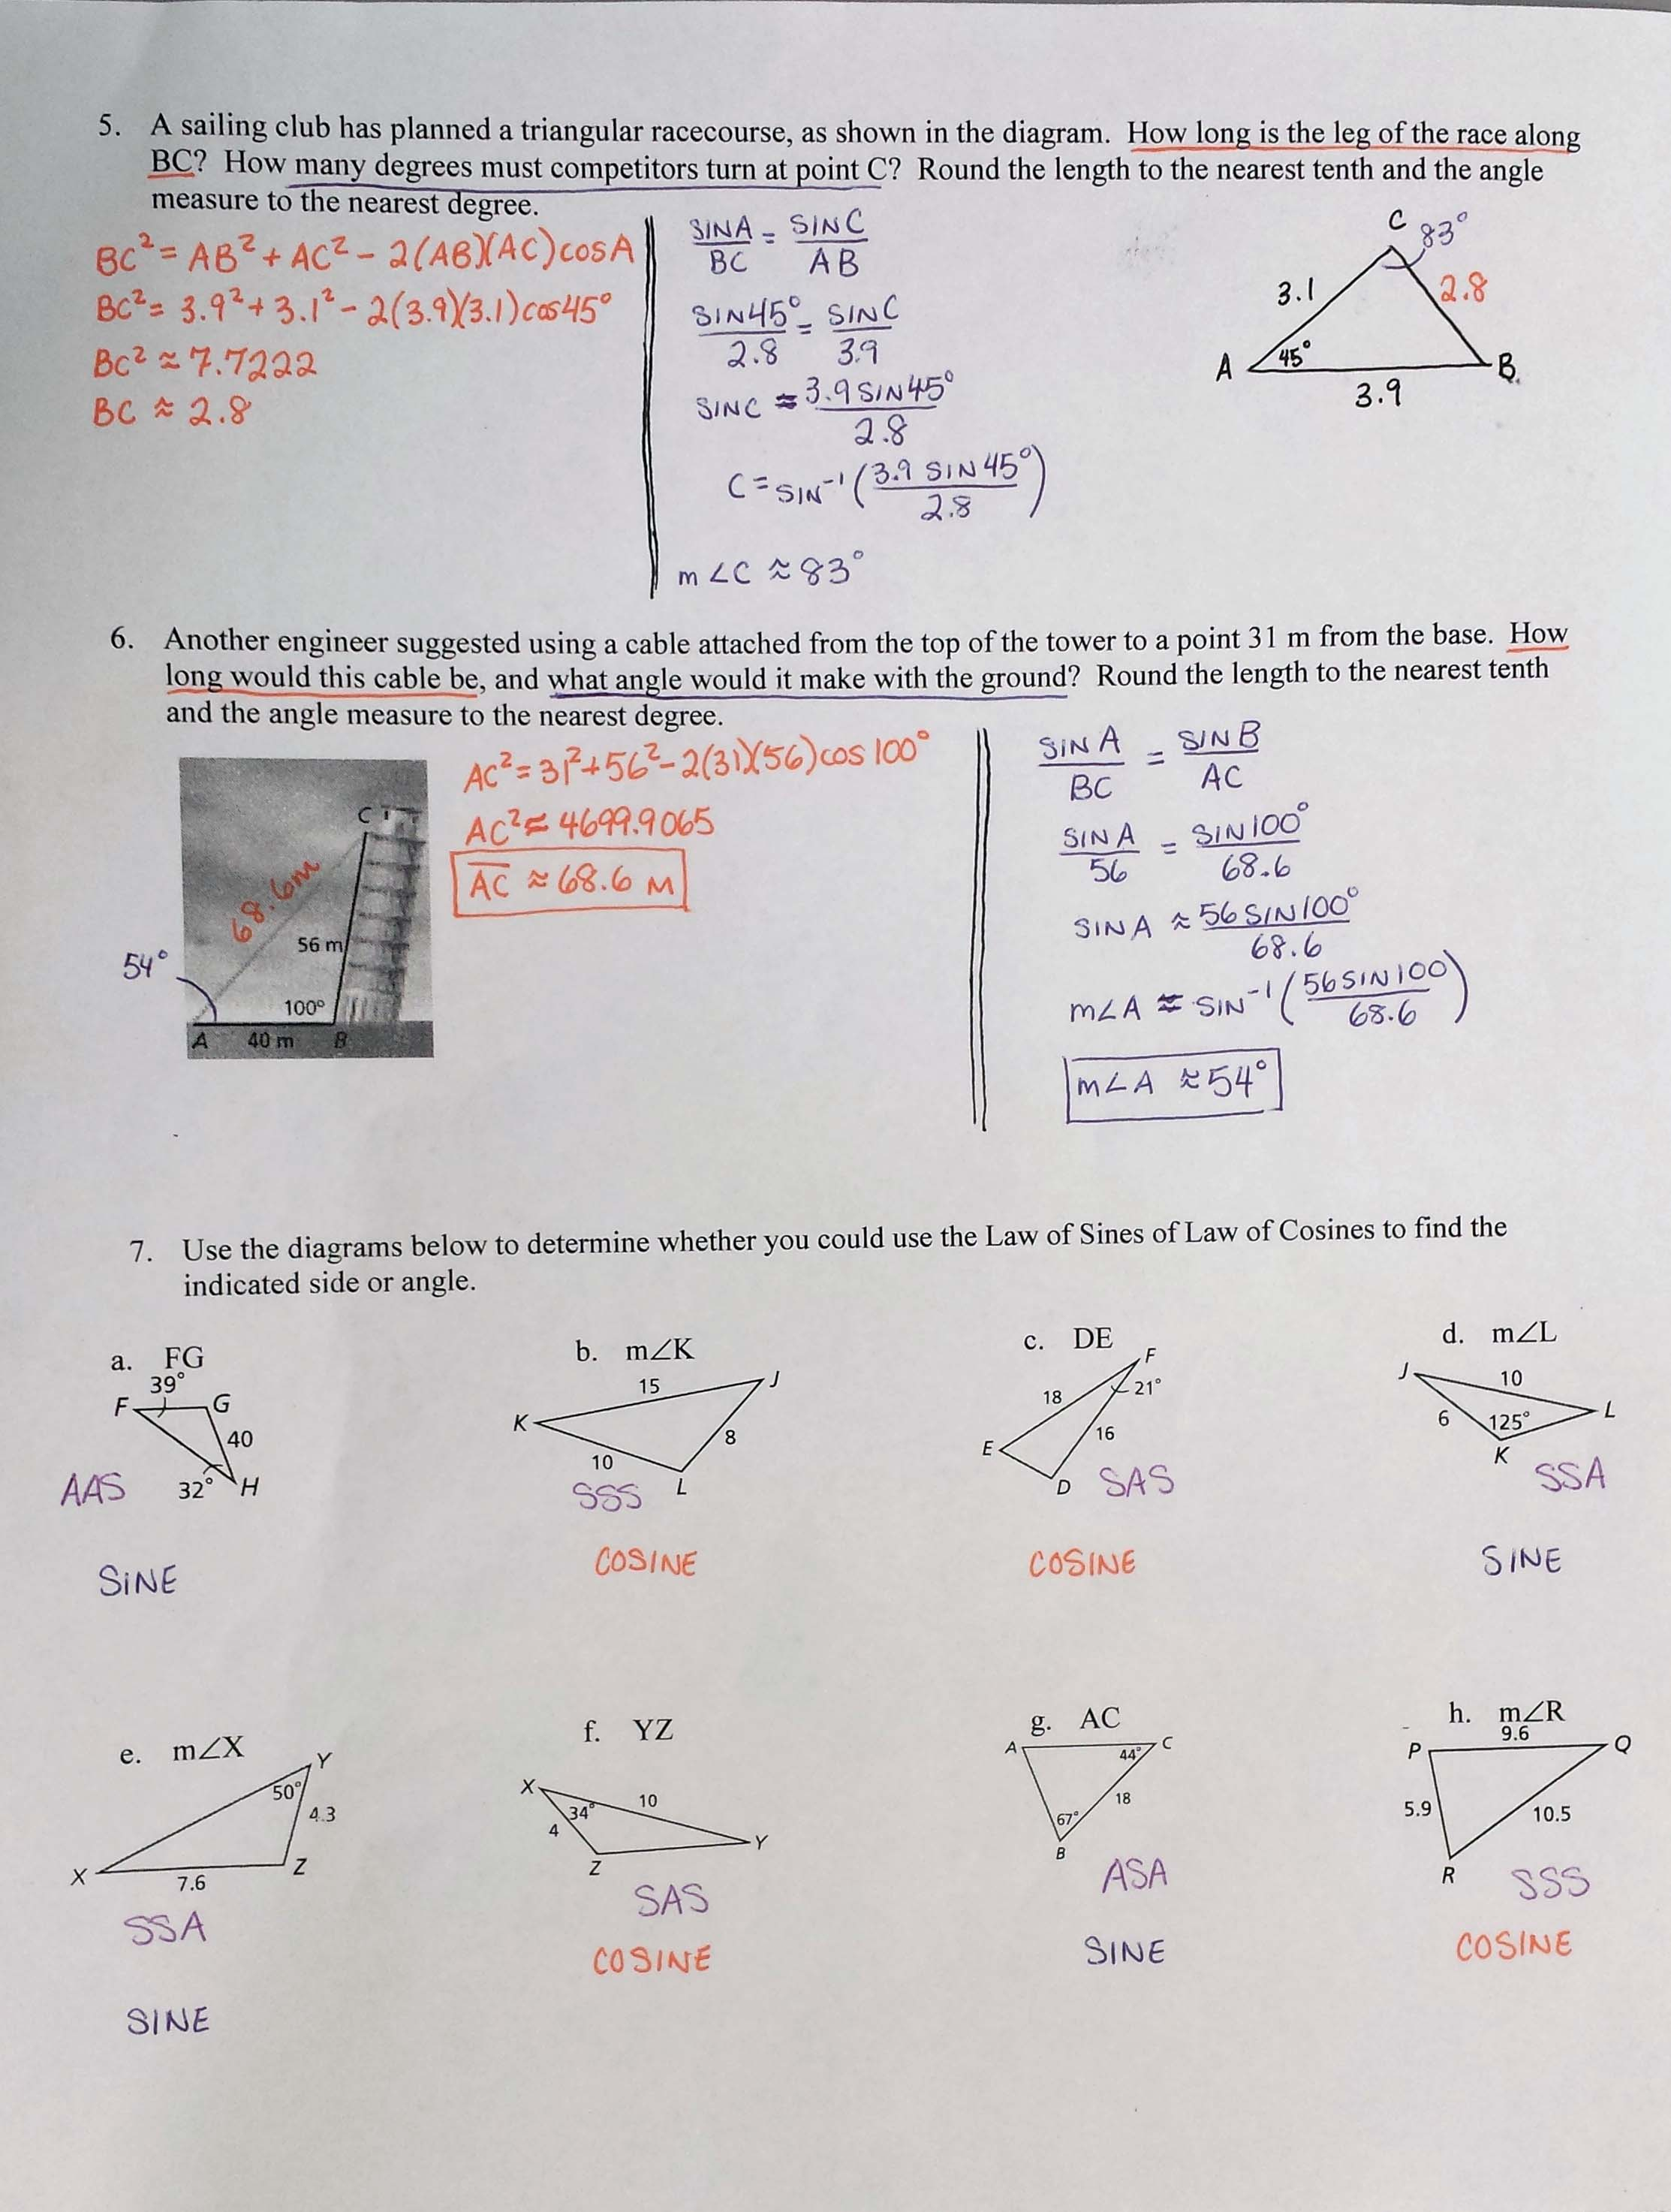 worksheet Angles Of Elevation And Depression Worksheet Answers mrs garnet at pvphs 8 5 notes law of sines and cosines page 1